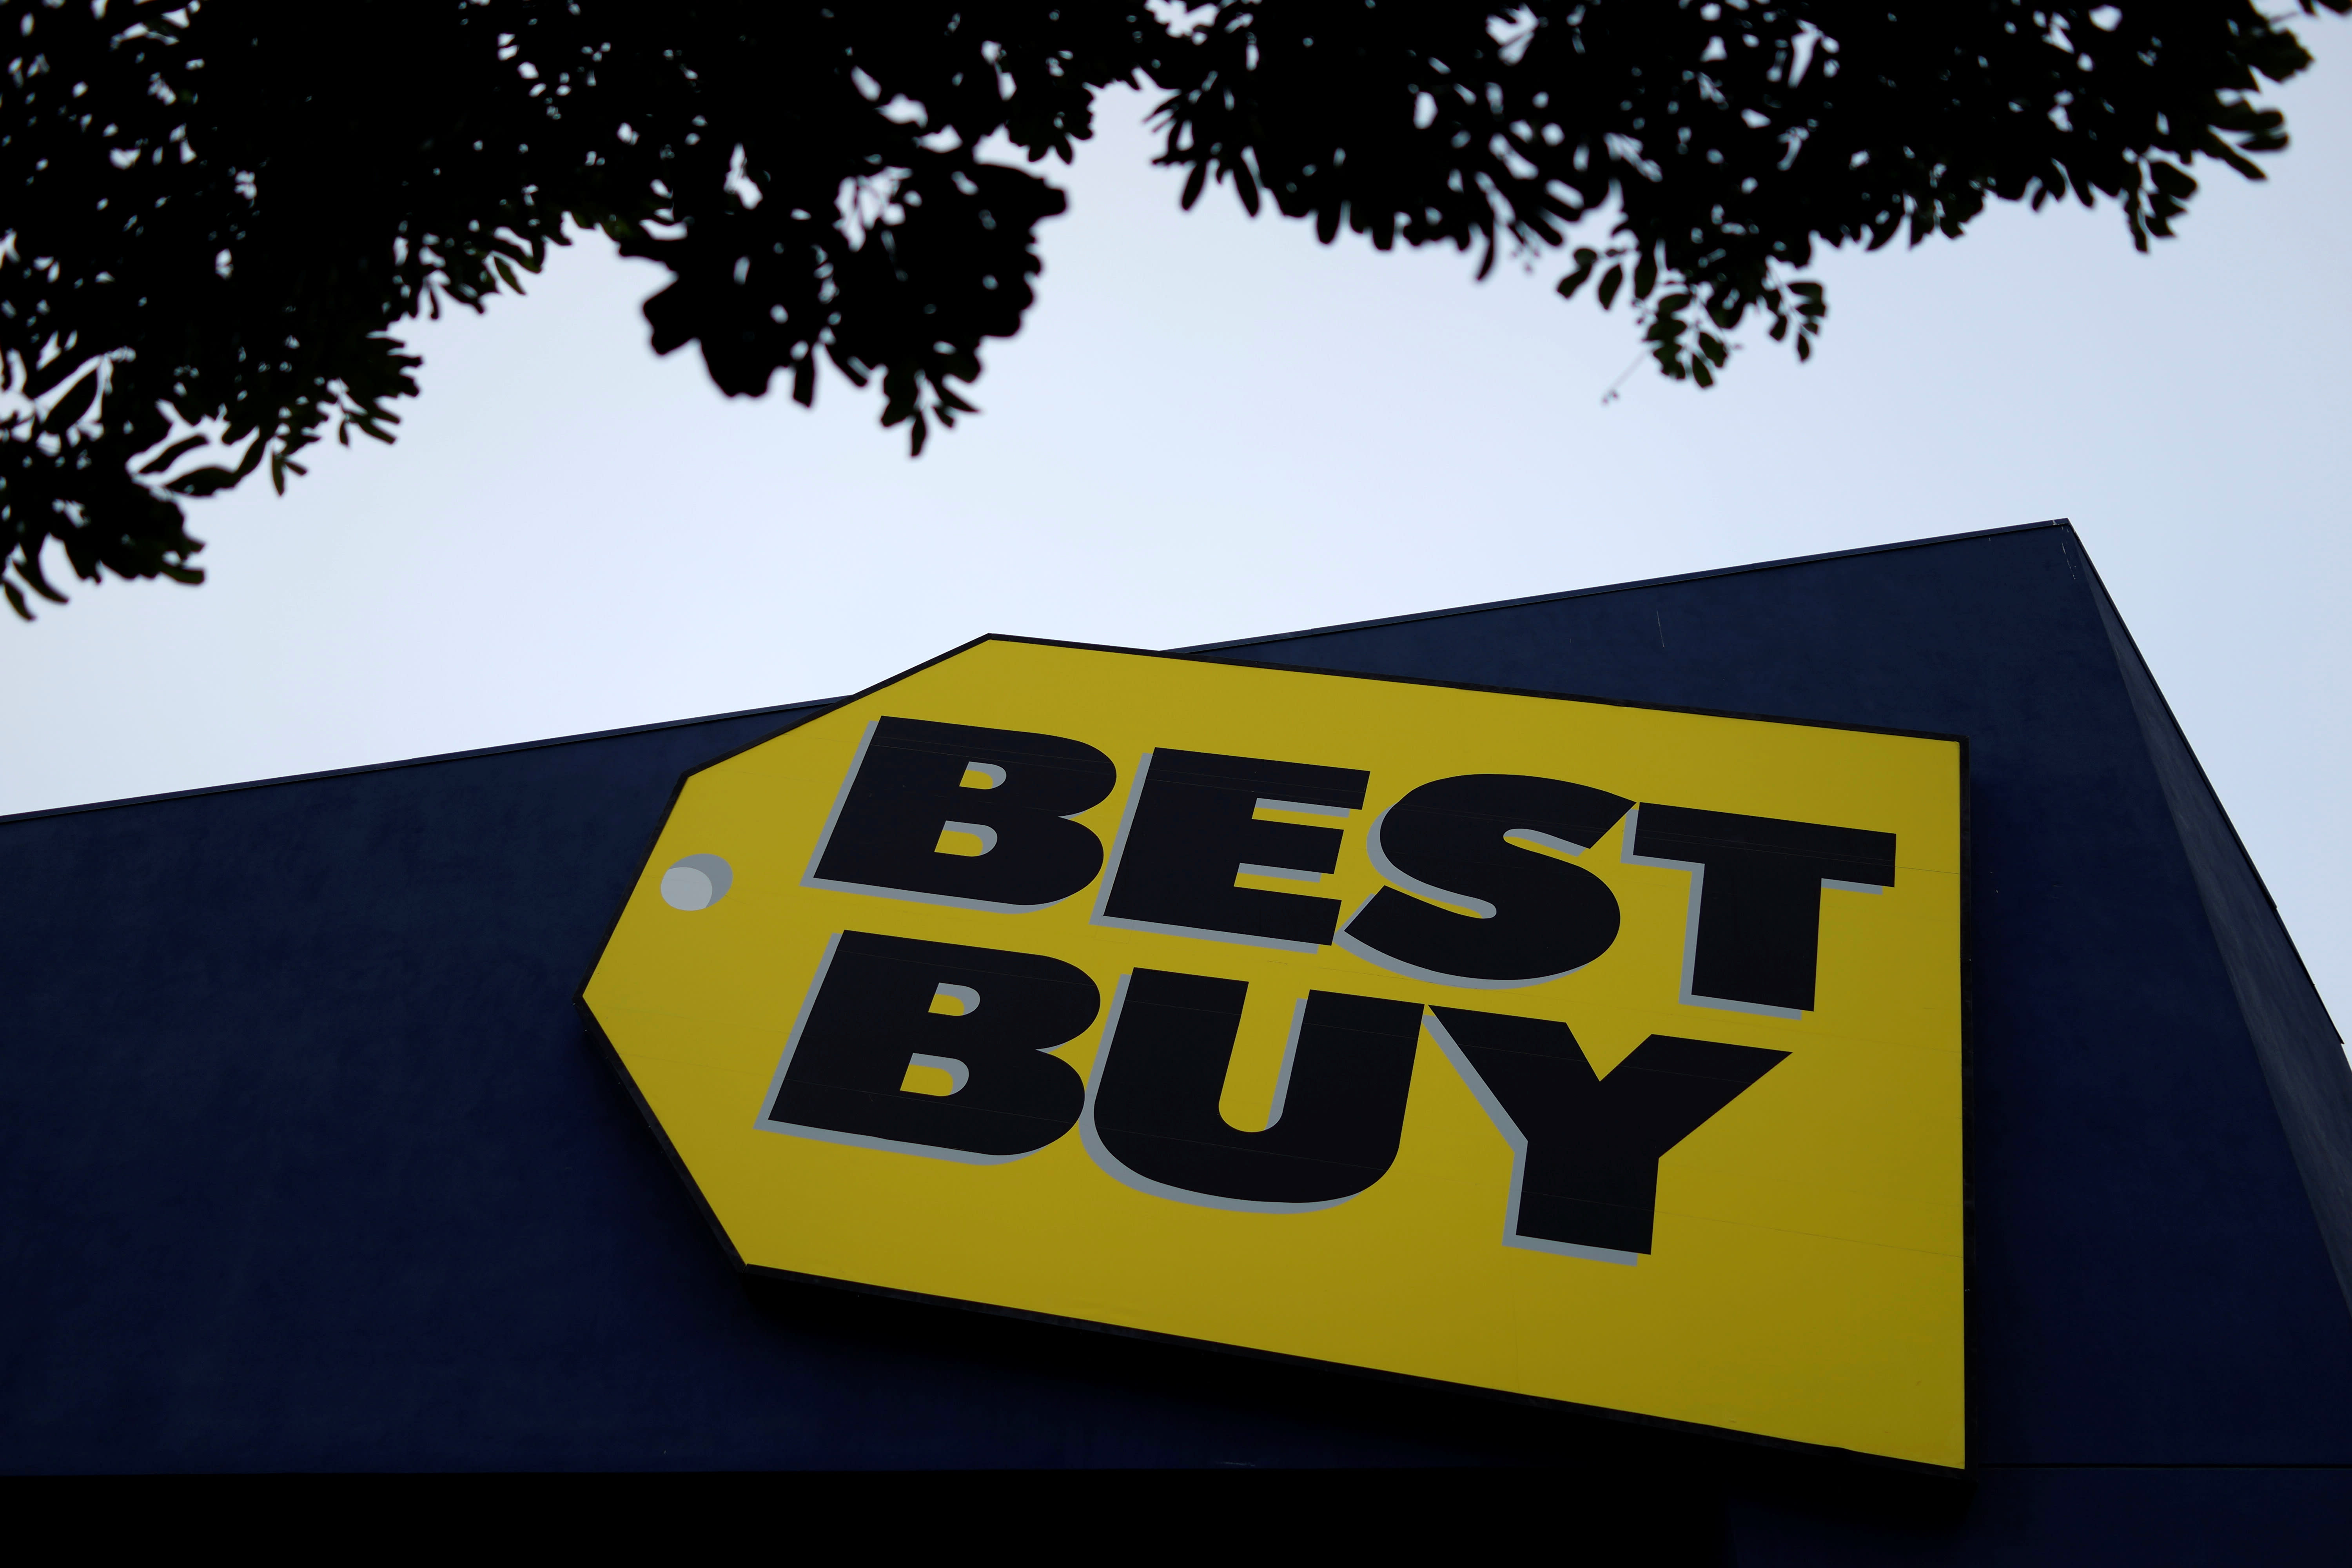 Best Buy shifts stores to curbside pickup only as demand surges for home office equipment